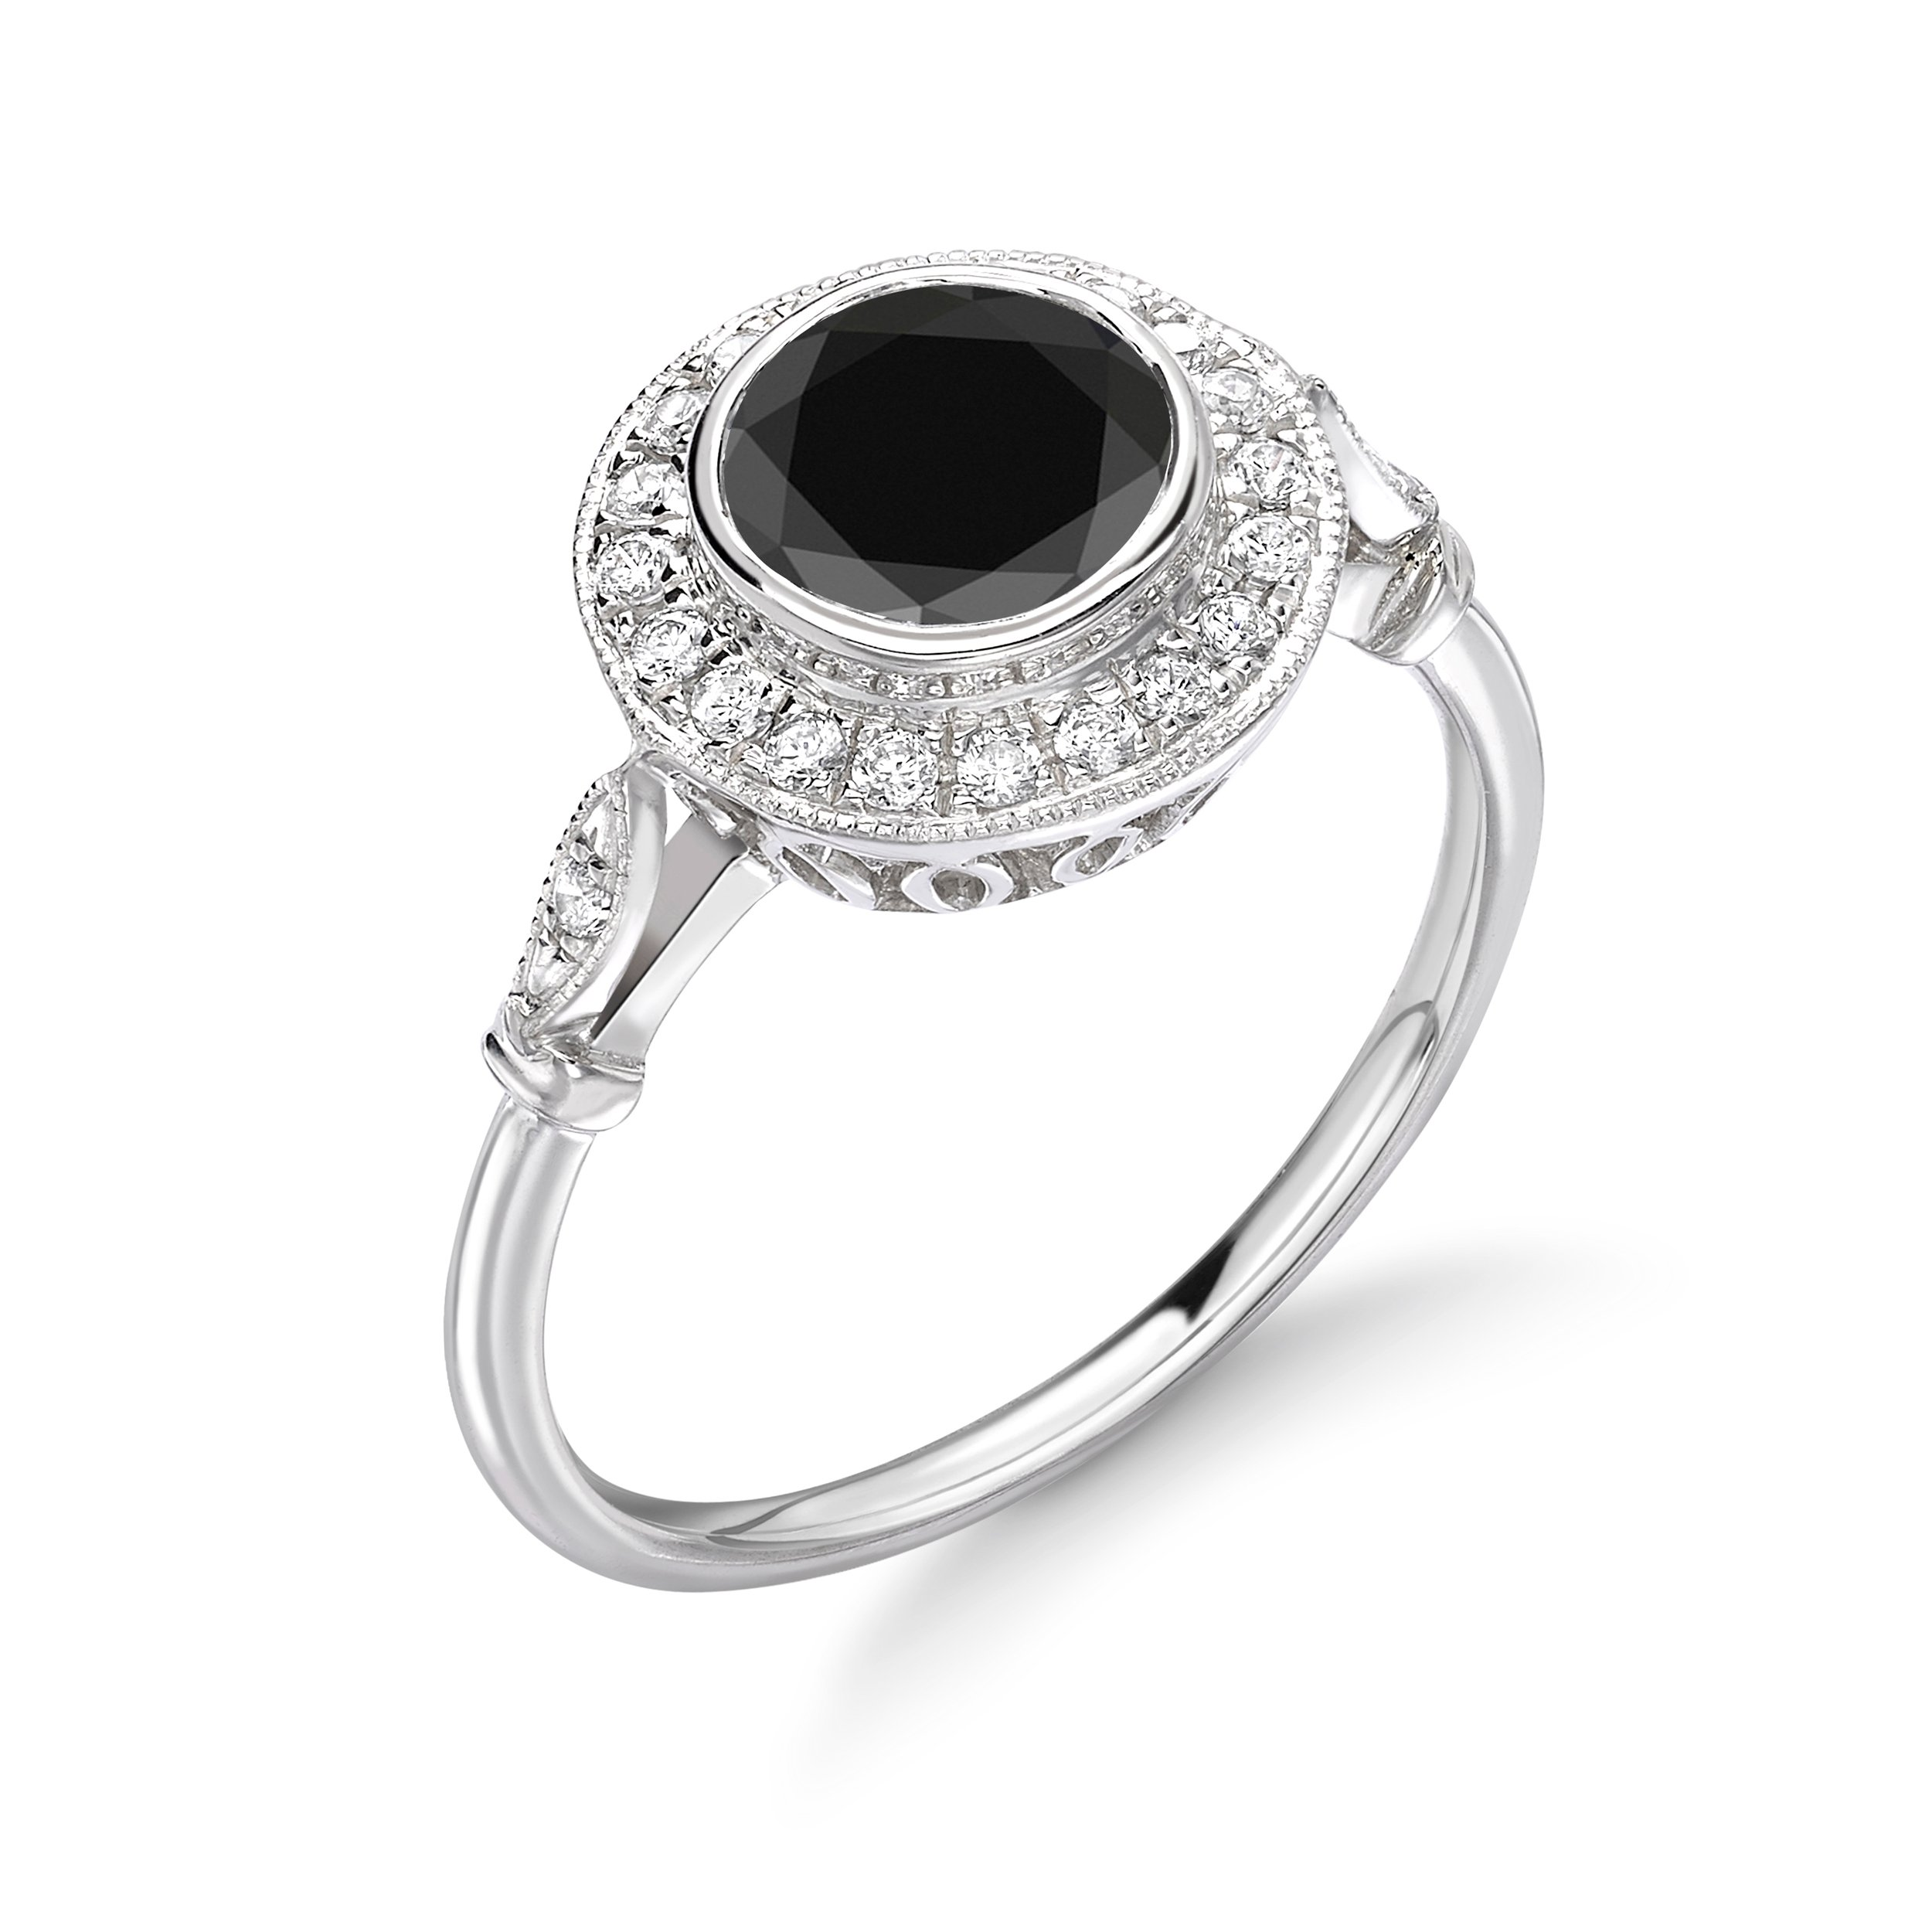 Bezel Set Vintage Style Halo Black Diamond Engagement Rings